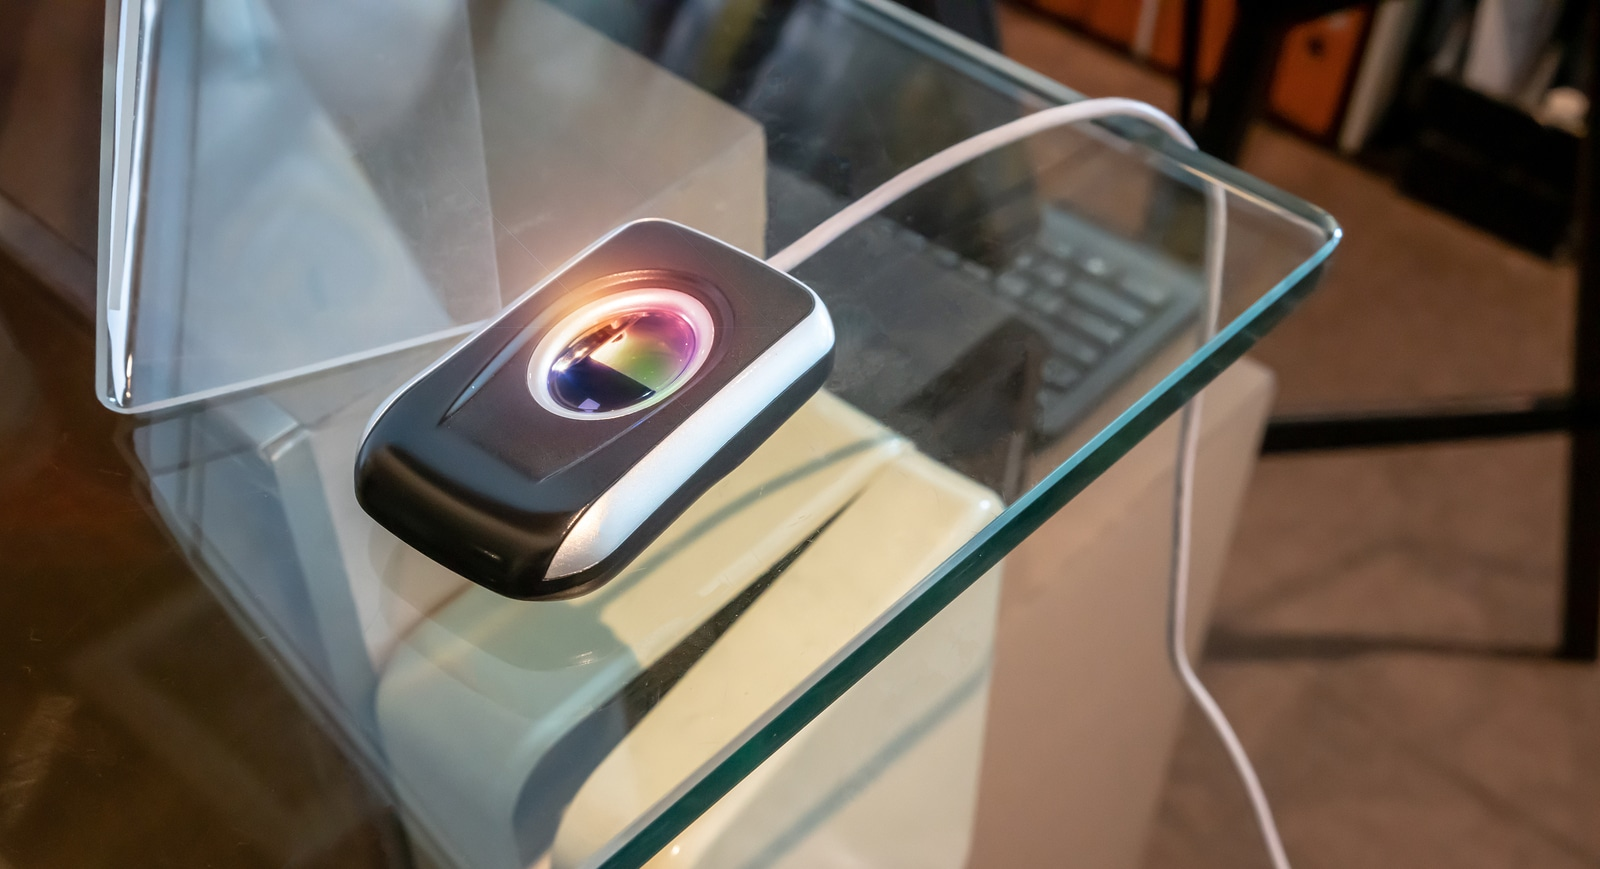 Fingerprint scanner on glass table for check-in security system. Fingerprint and password lock in a office building, The fingerprint scanner control machine for record work time, unlock door office.